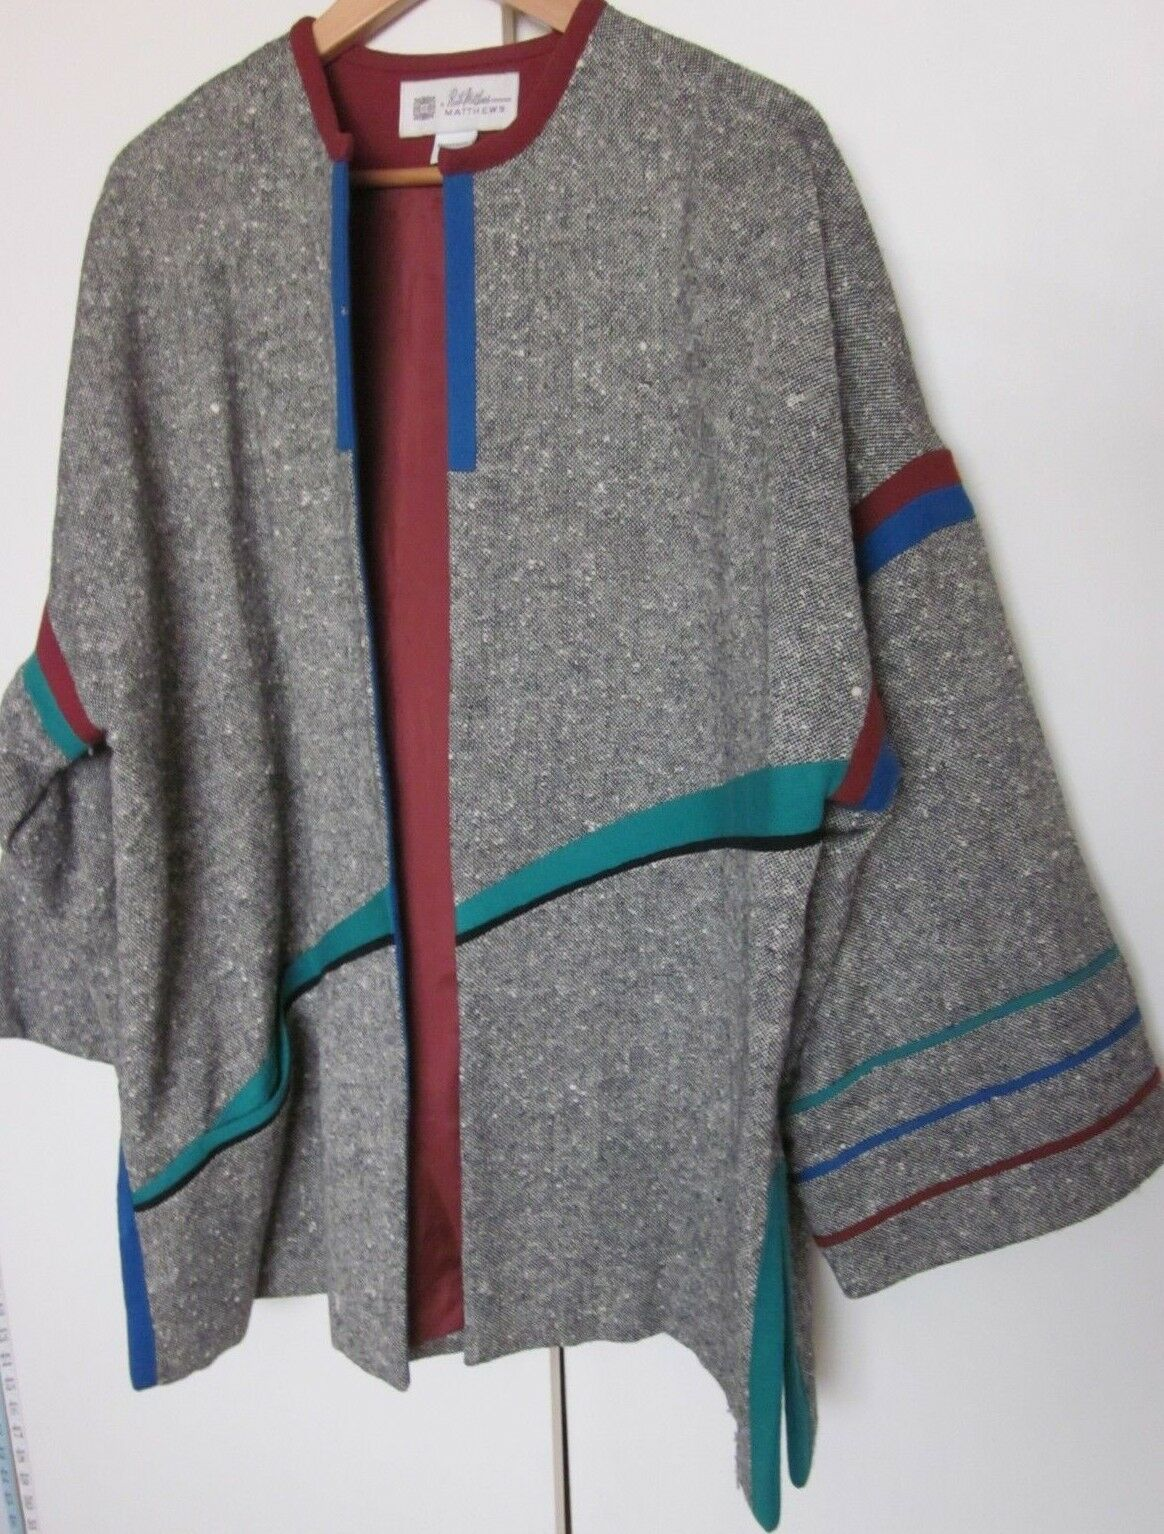 Women s RUTH MATTHEWS Design Vintage Grey Tweed Multi color Skirt Suit  Medium